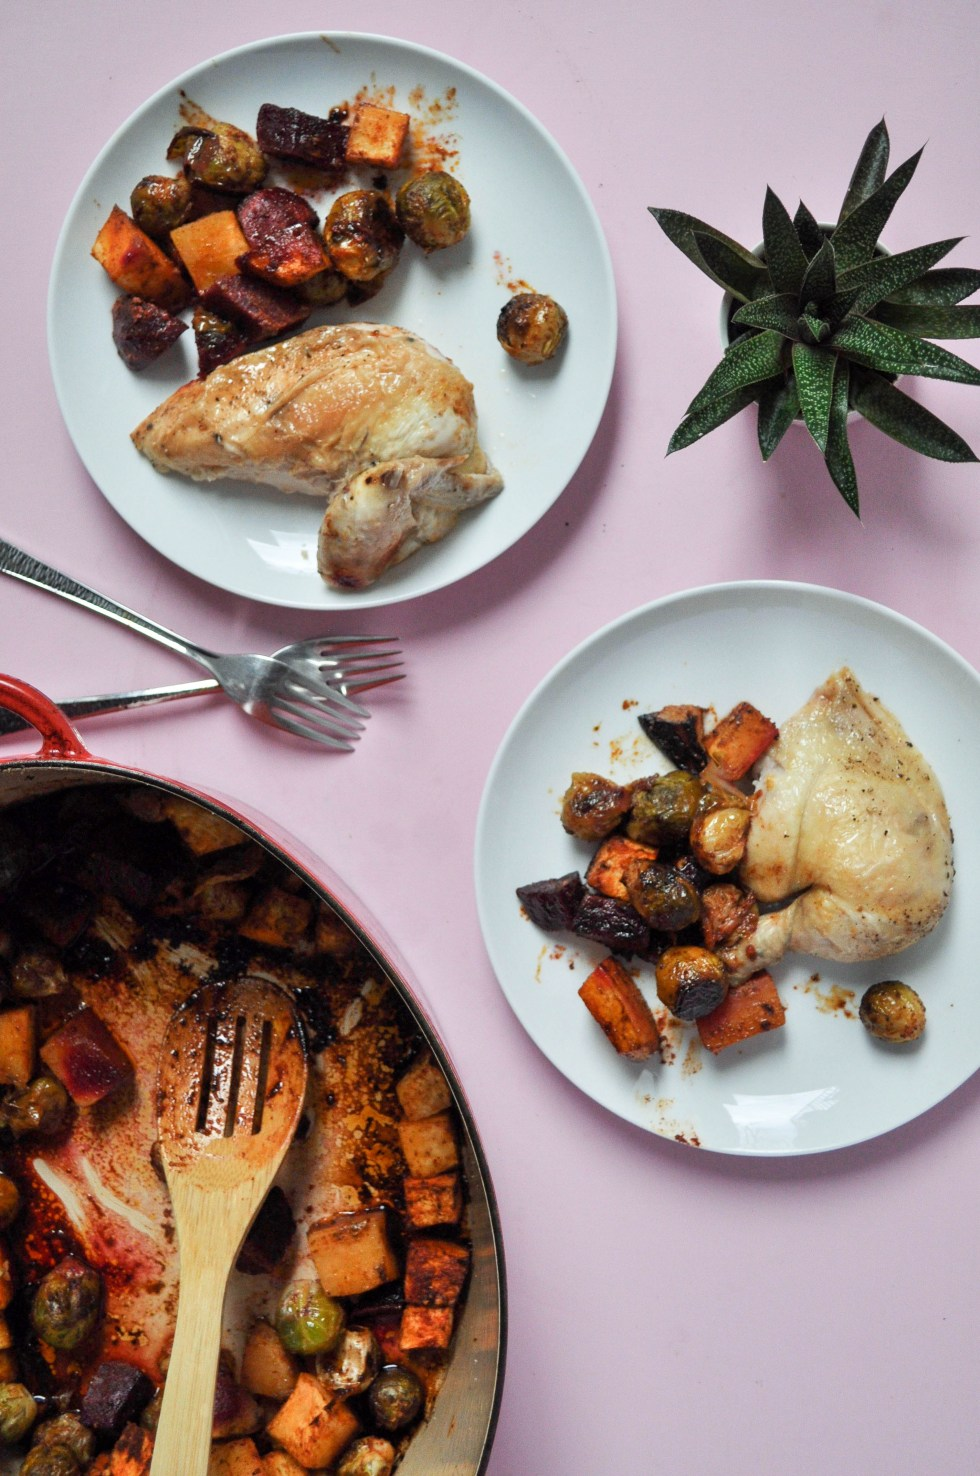 A no fuss roasted chicken + paprika root vegetables, beets and rutabagas, plus brussels for good measure. Colorful veg basted in all the chicken juices.